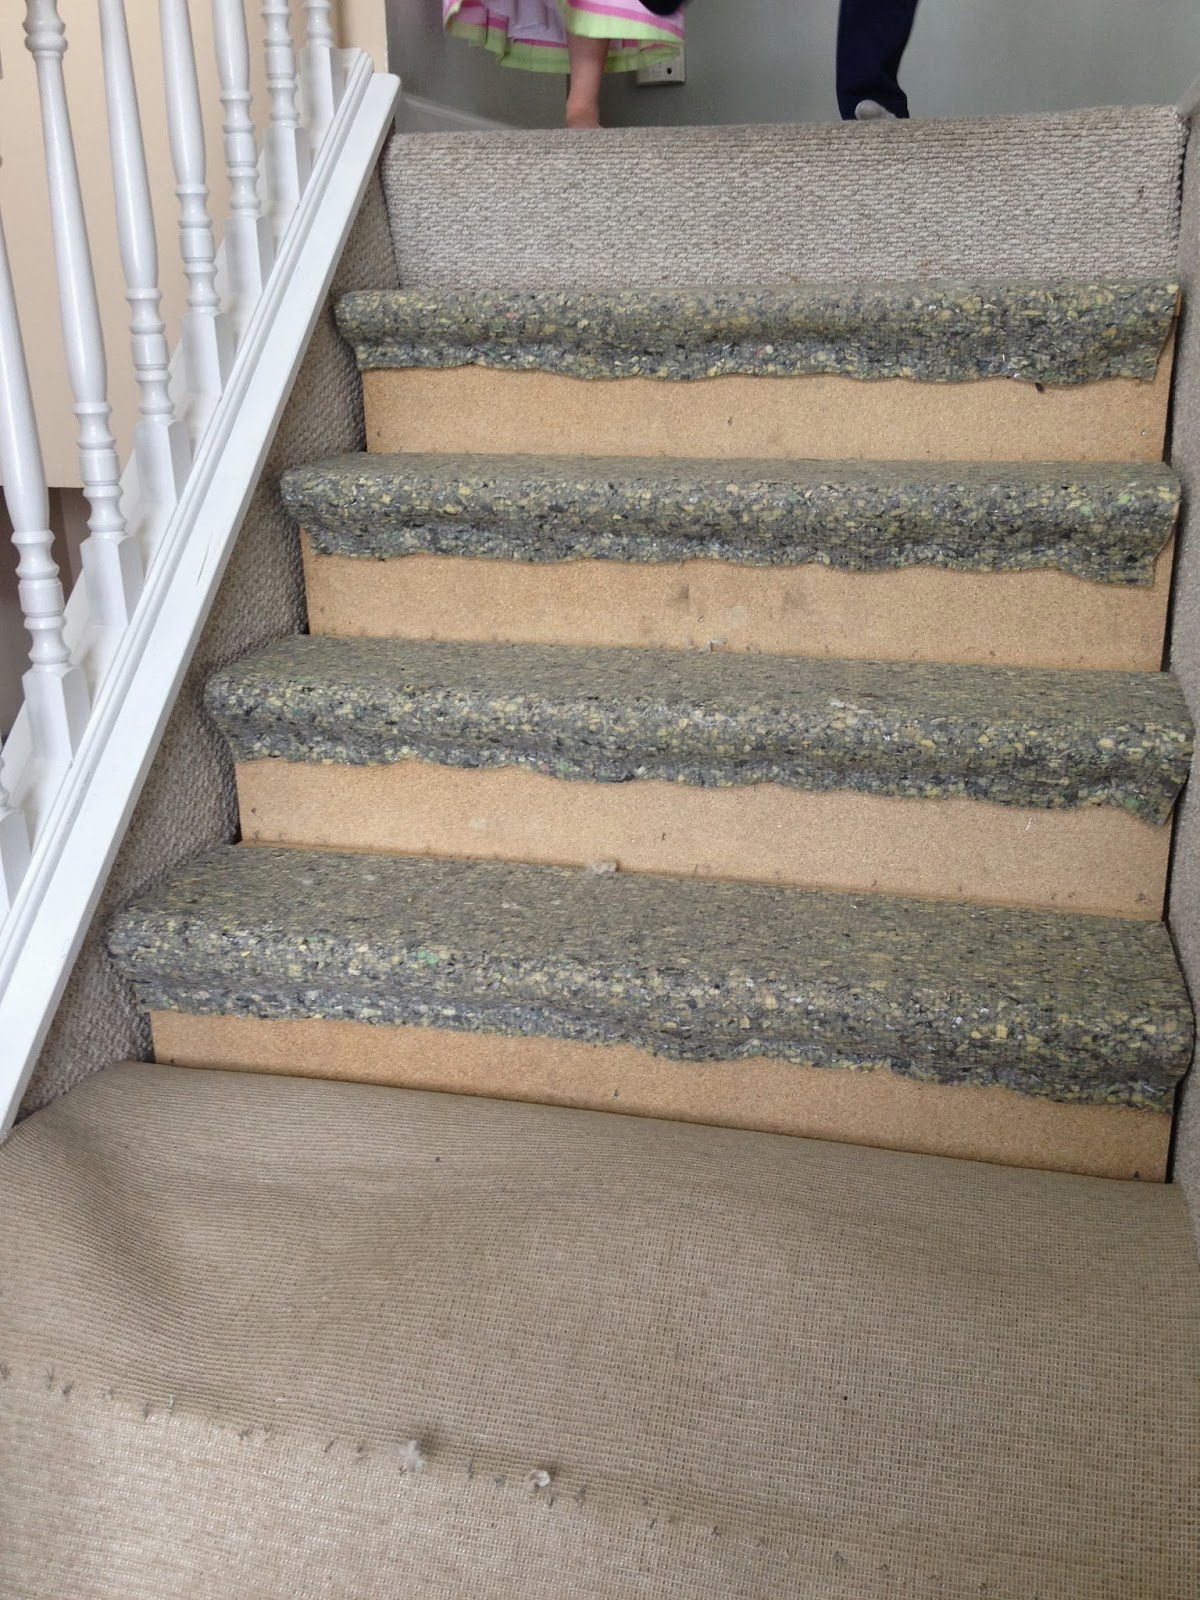 Removing Carpet From The Stairs Serene Swede On Remodelaholic